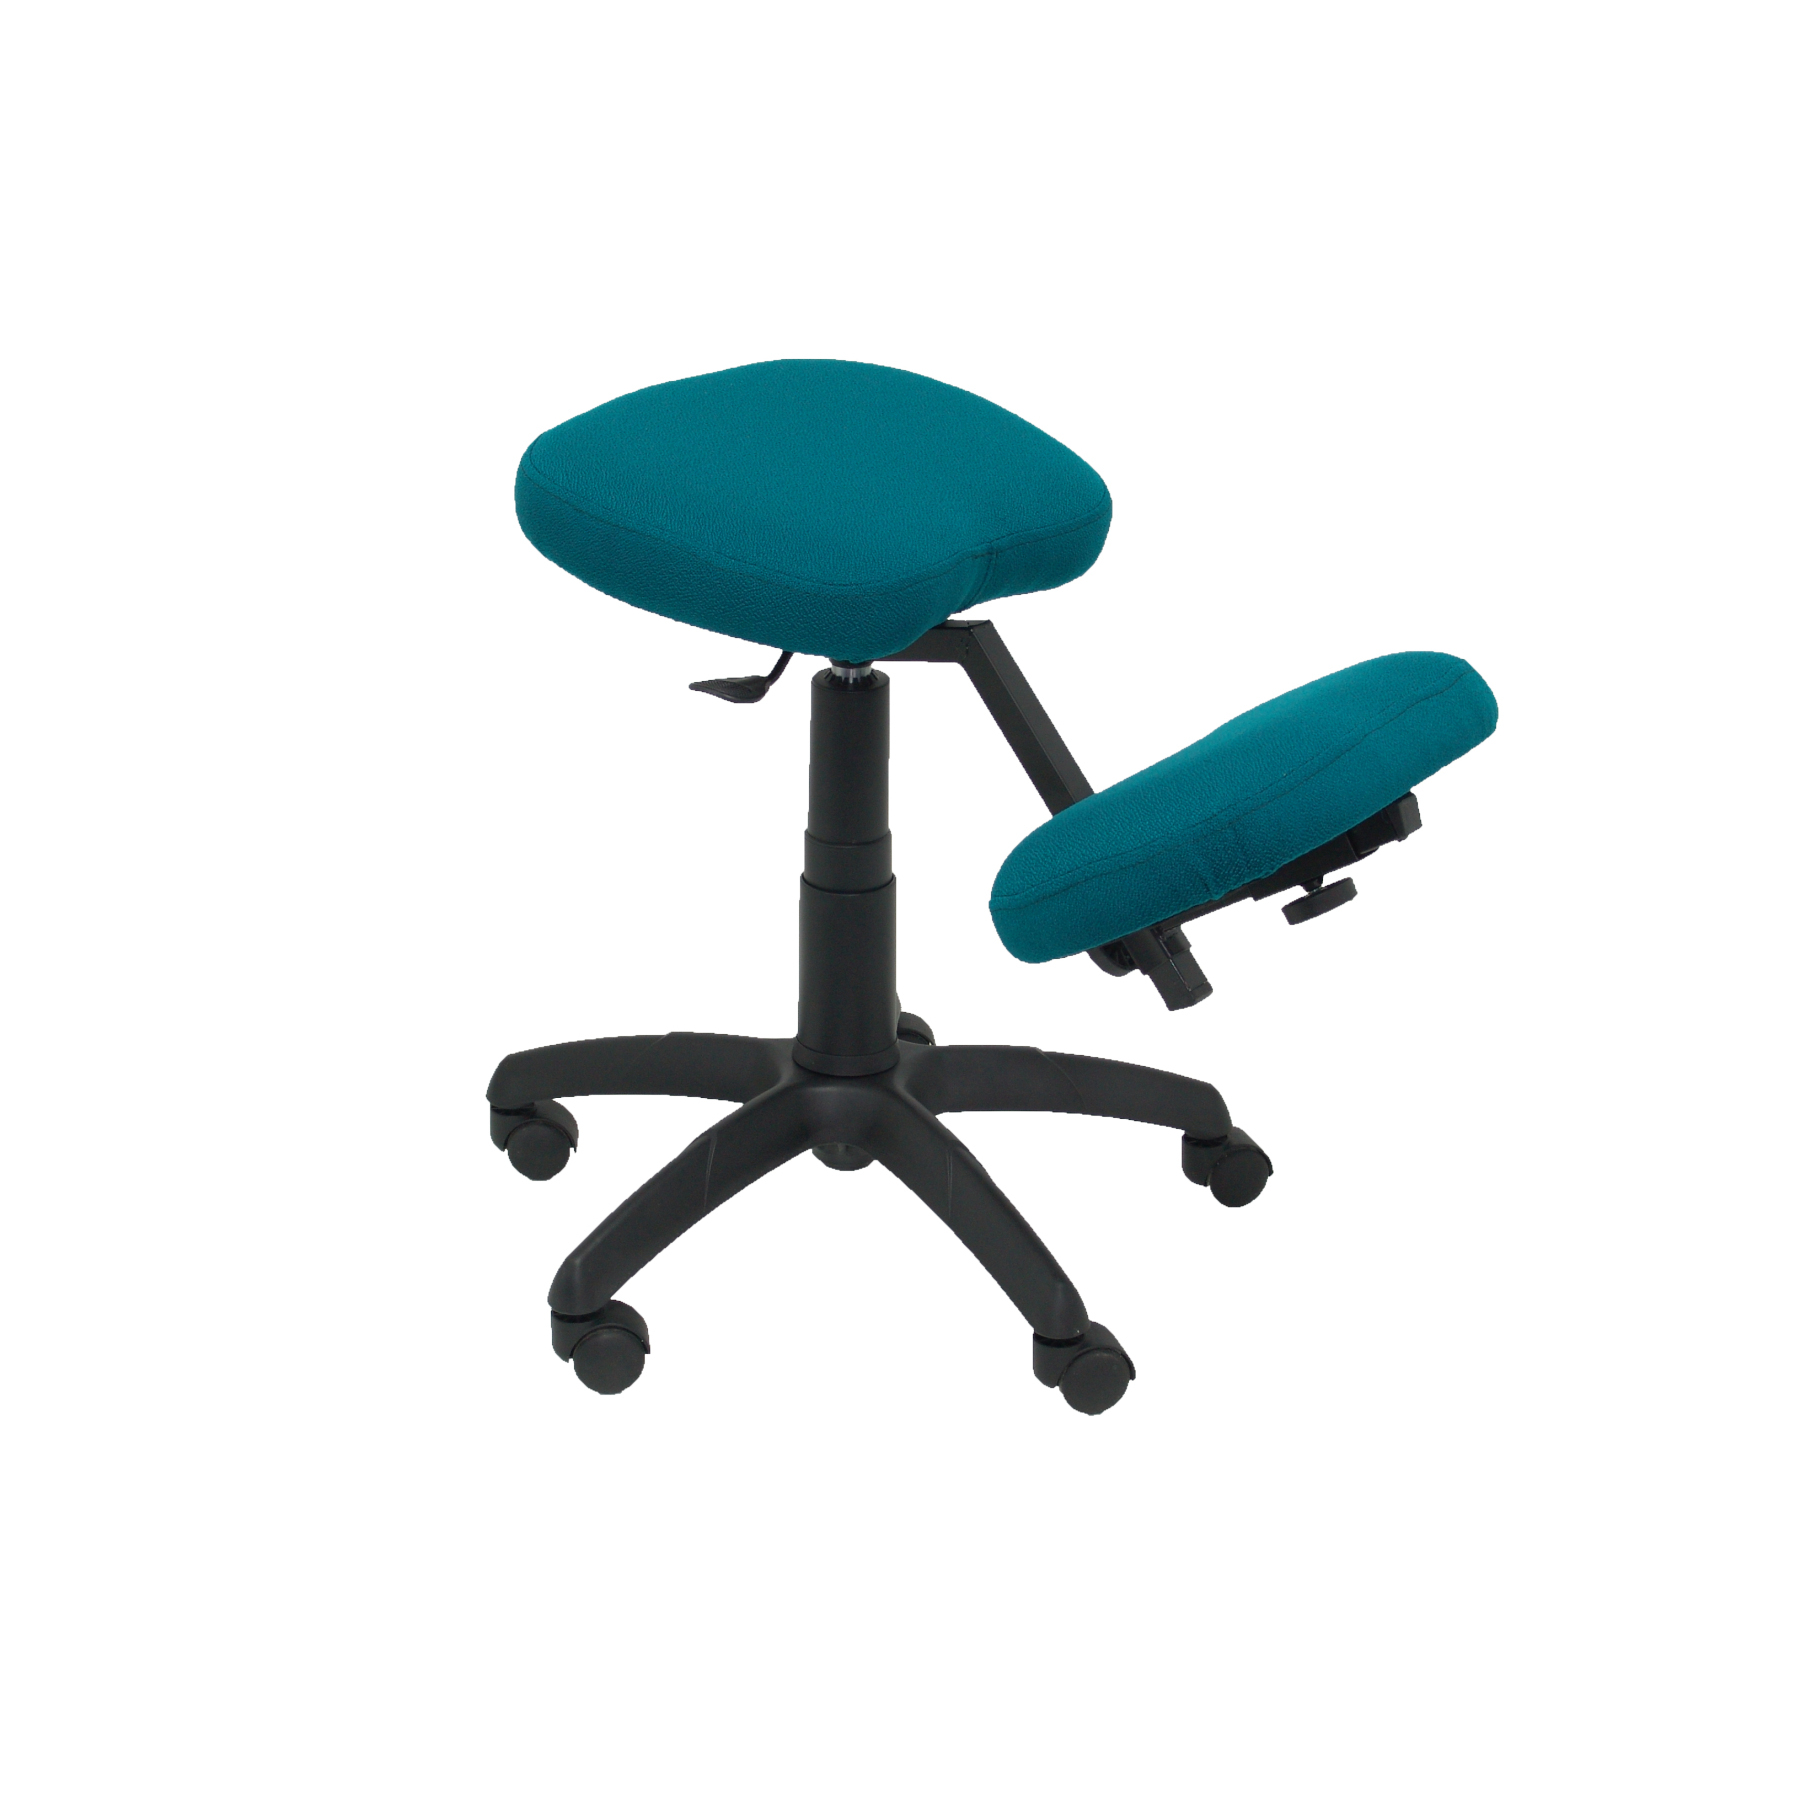 Office's Stool Ergonomic Swivel And Dimmable In High Altitude Up Seat Upholstered In BALI Tissue Dark Green Color (ROD